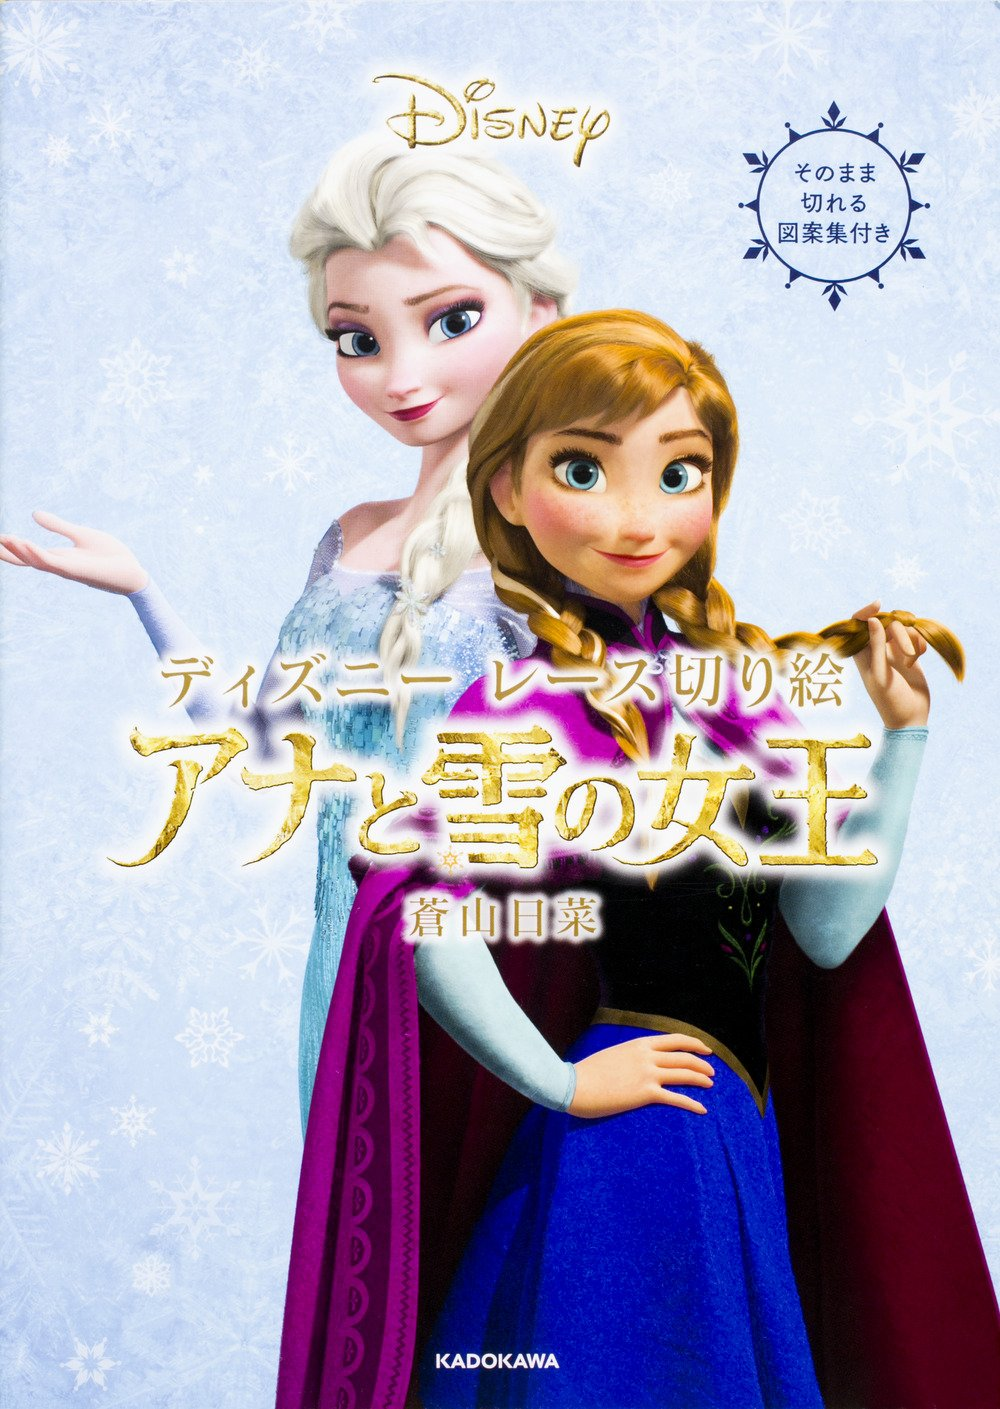 Disney lace cut picture Frozen